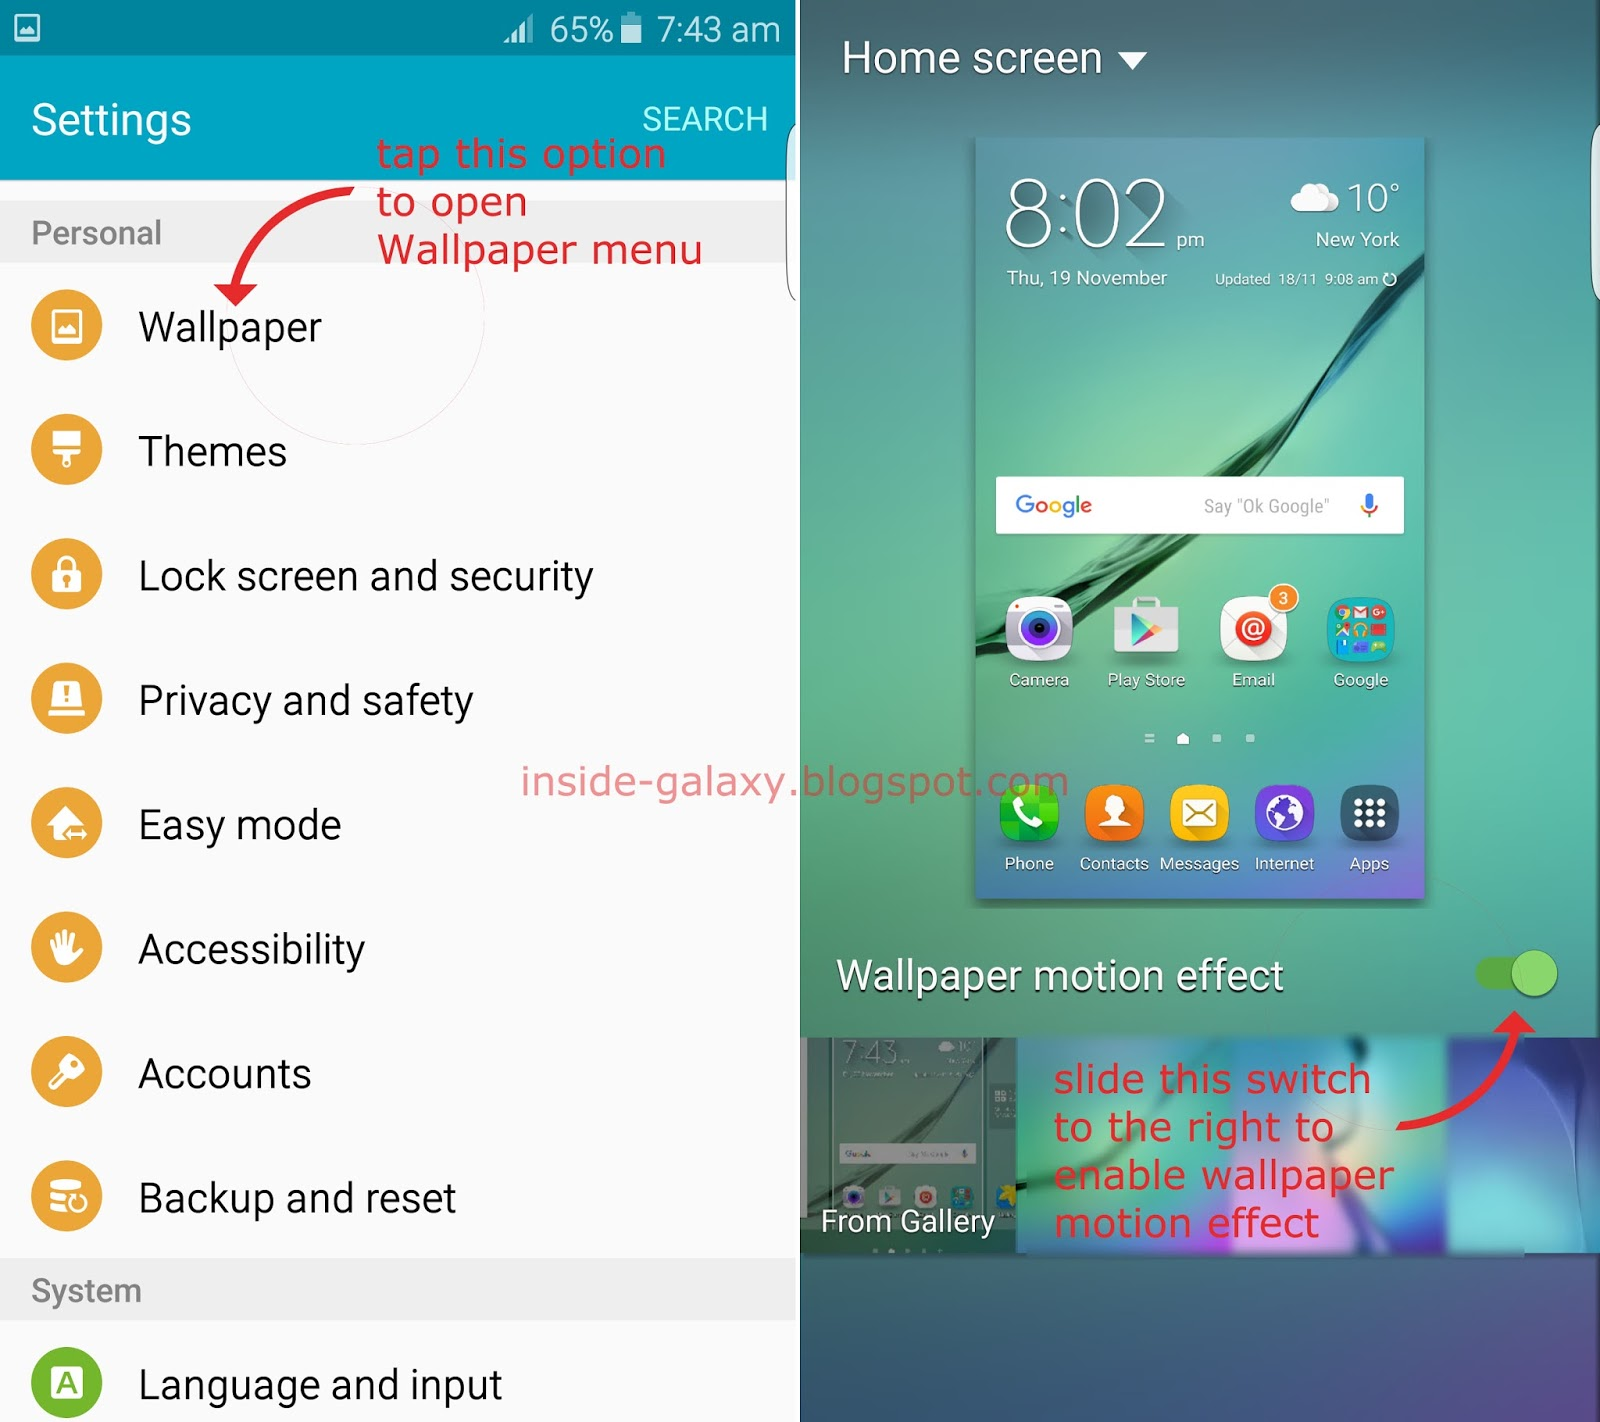 samsung galaxy s6 edge: how to enable and use wallpaper motion